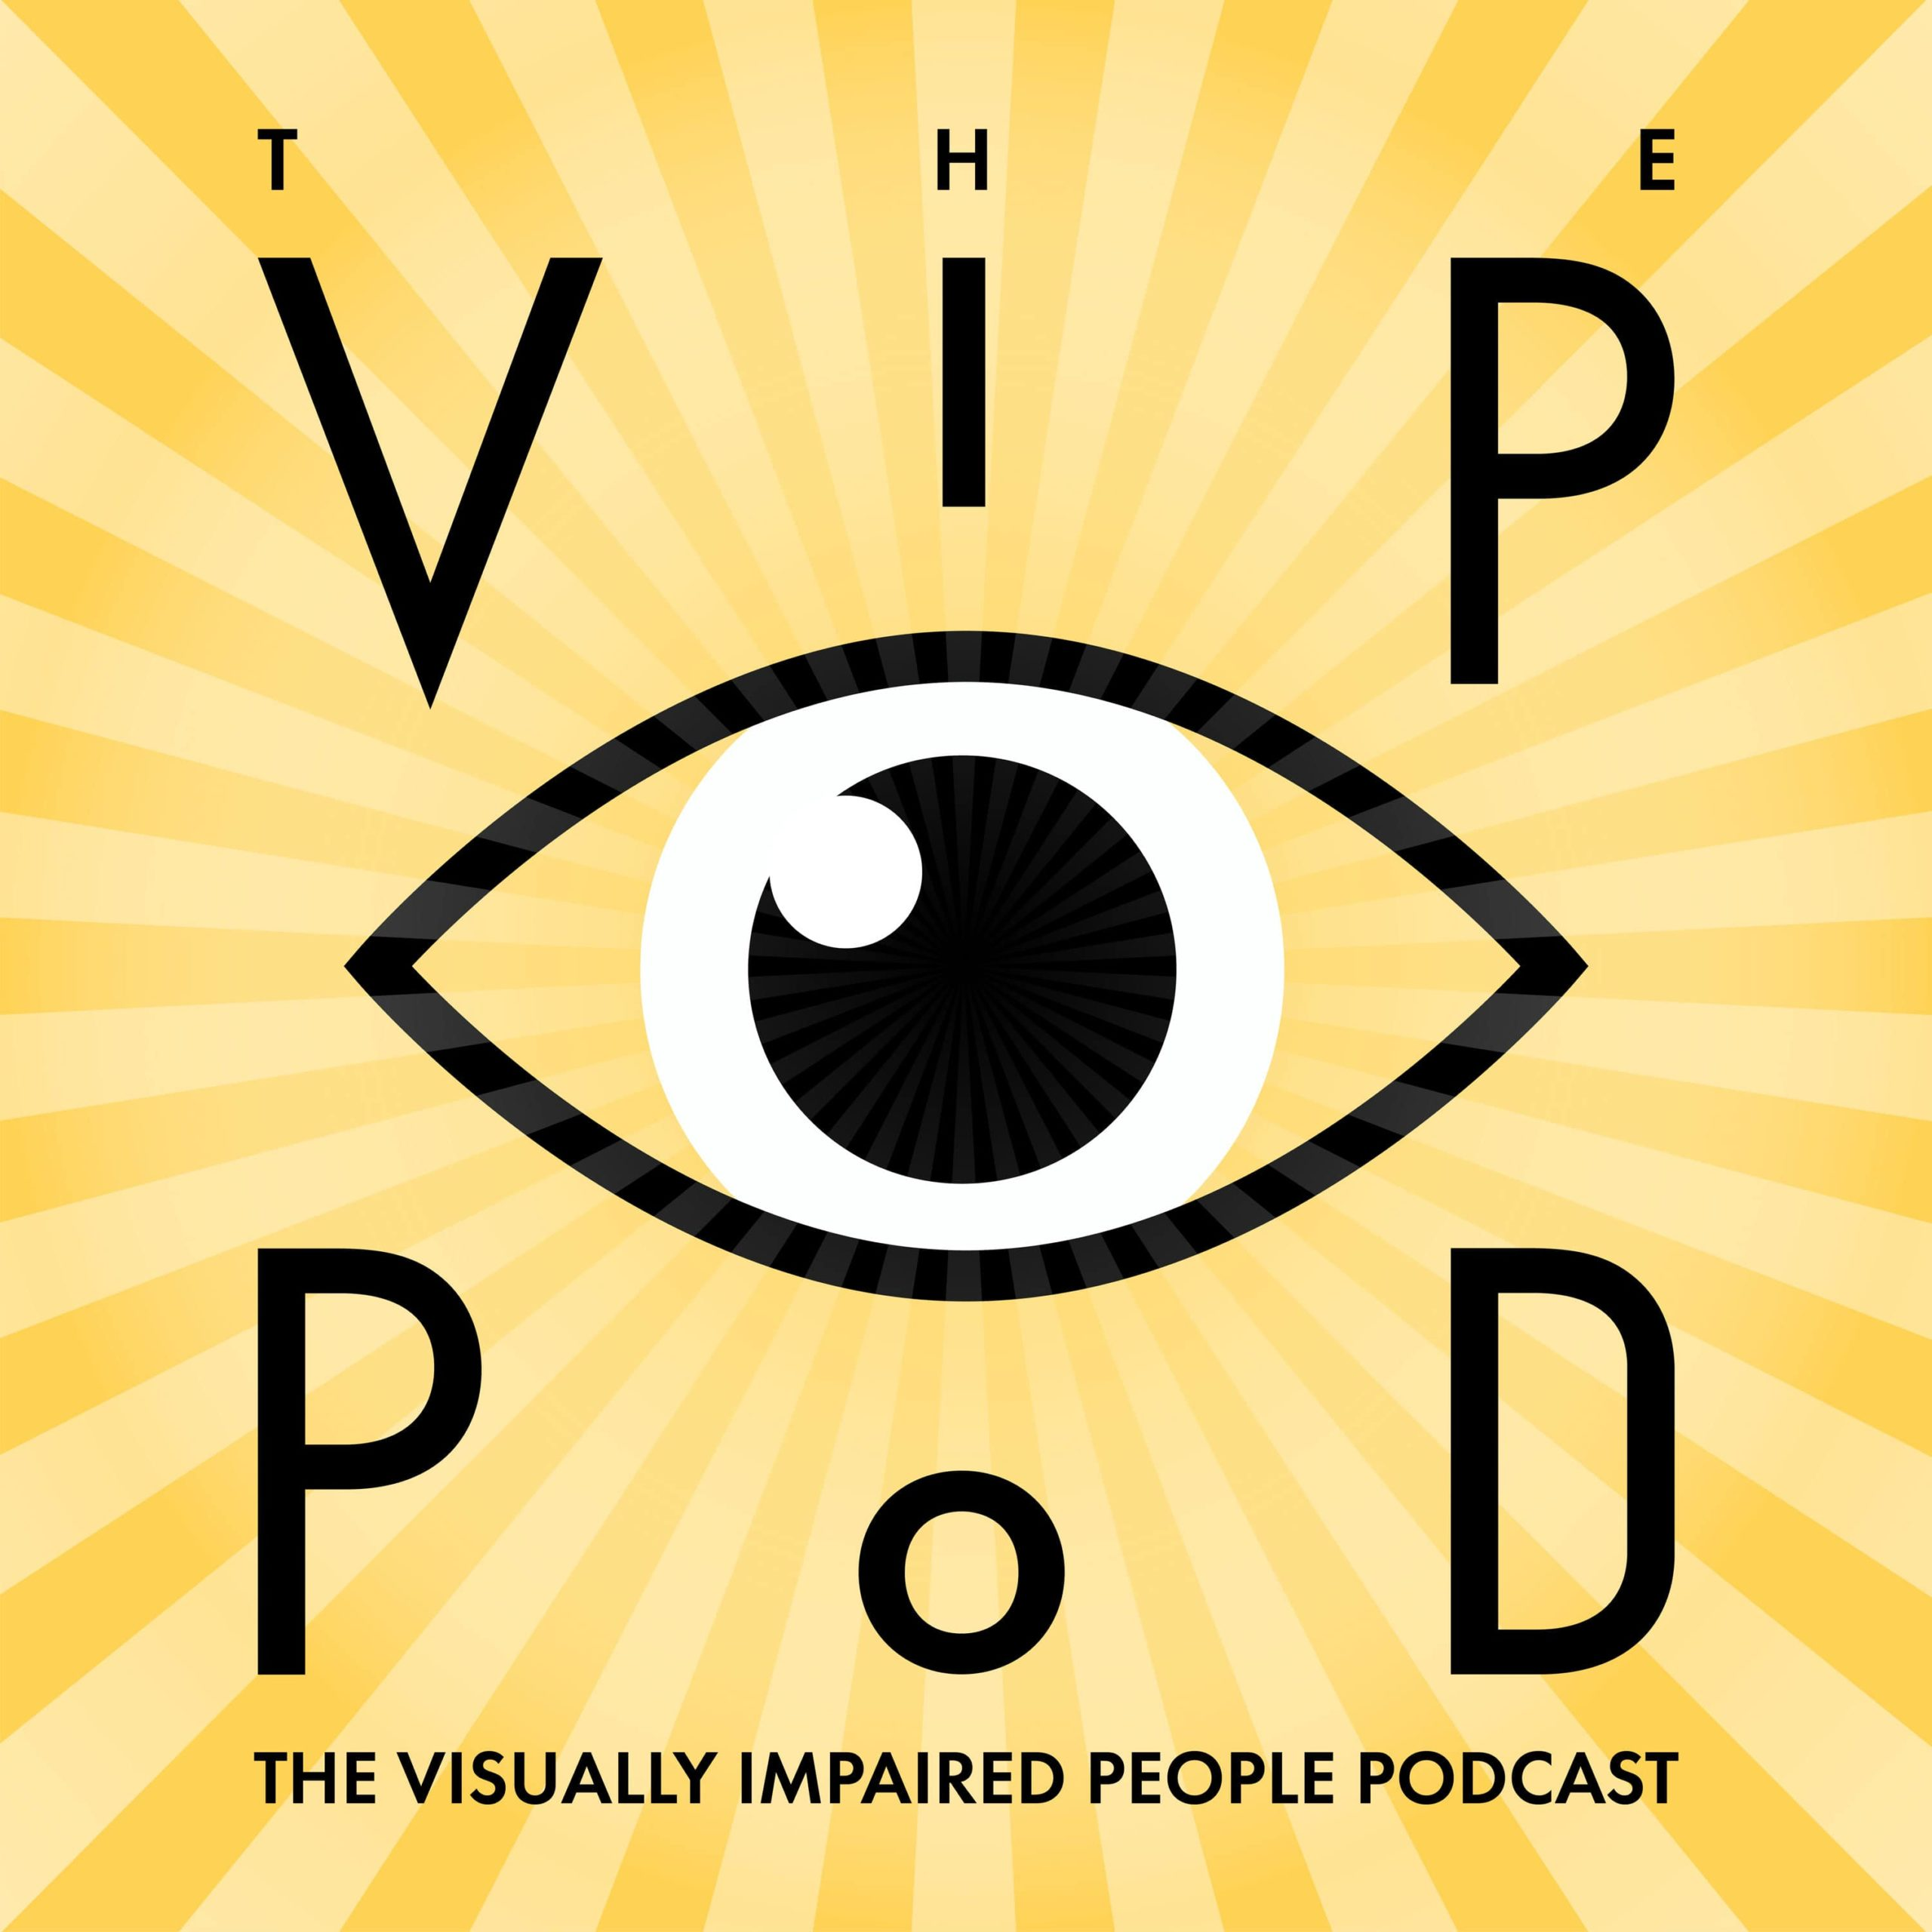 Square podcast logo with a soft yellow background and sunrays coming out of the centre. Large black and white cartoon eye with the text 'The VIP Pod: The Visually Impaired People Podcast' around the eye.